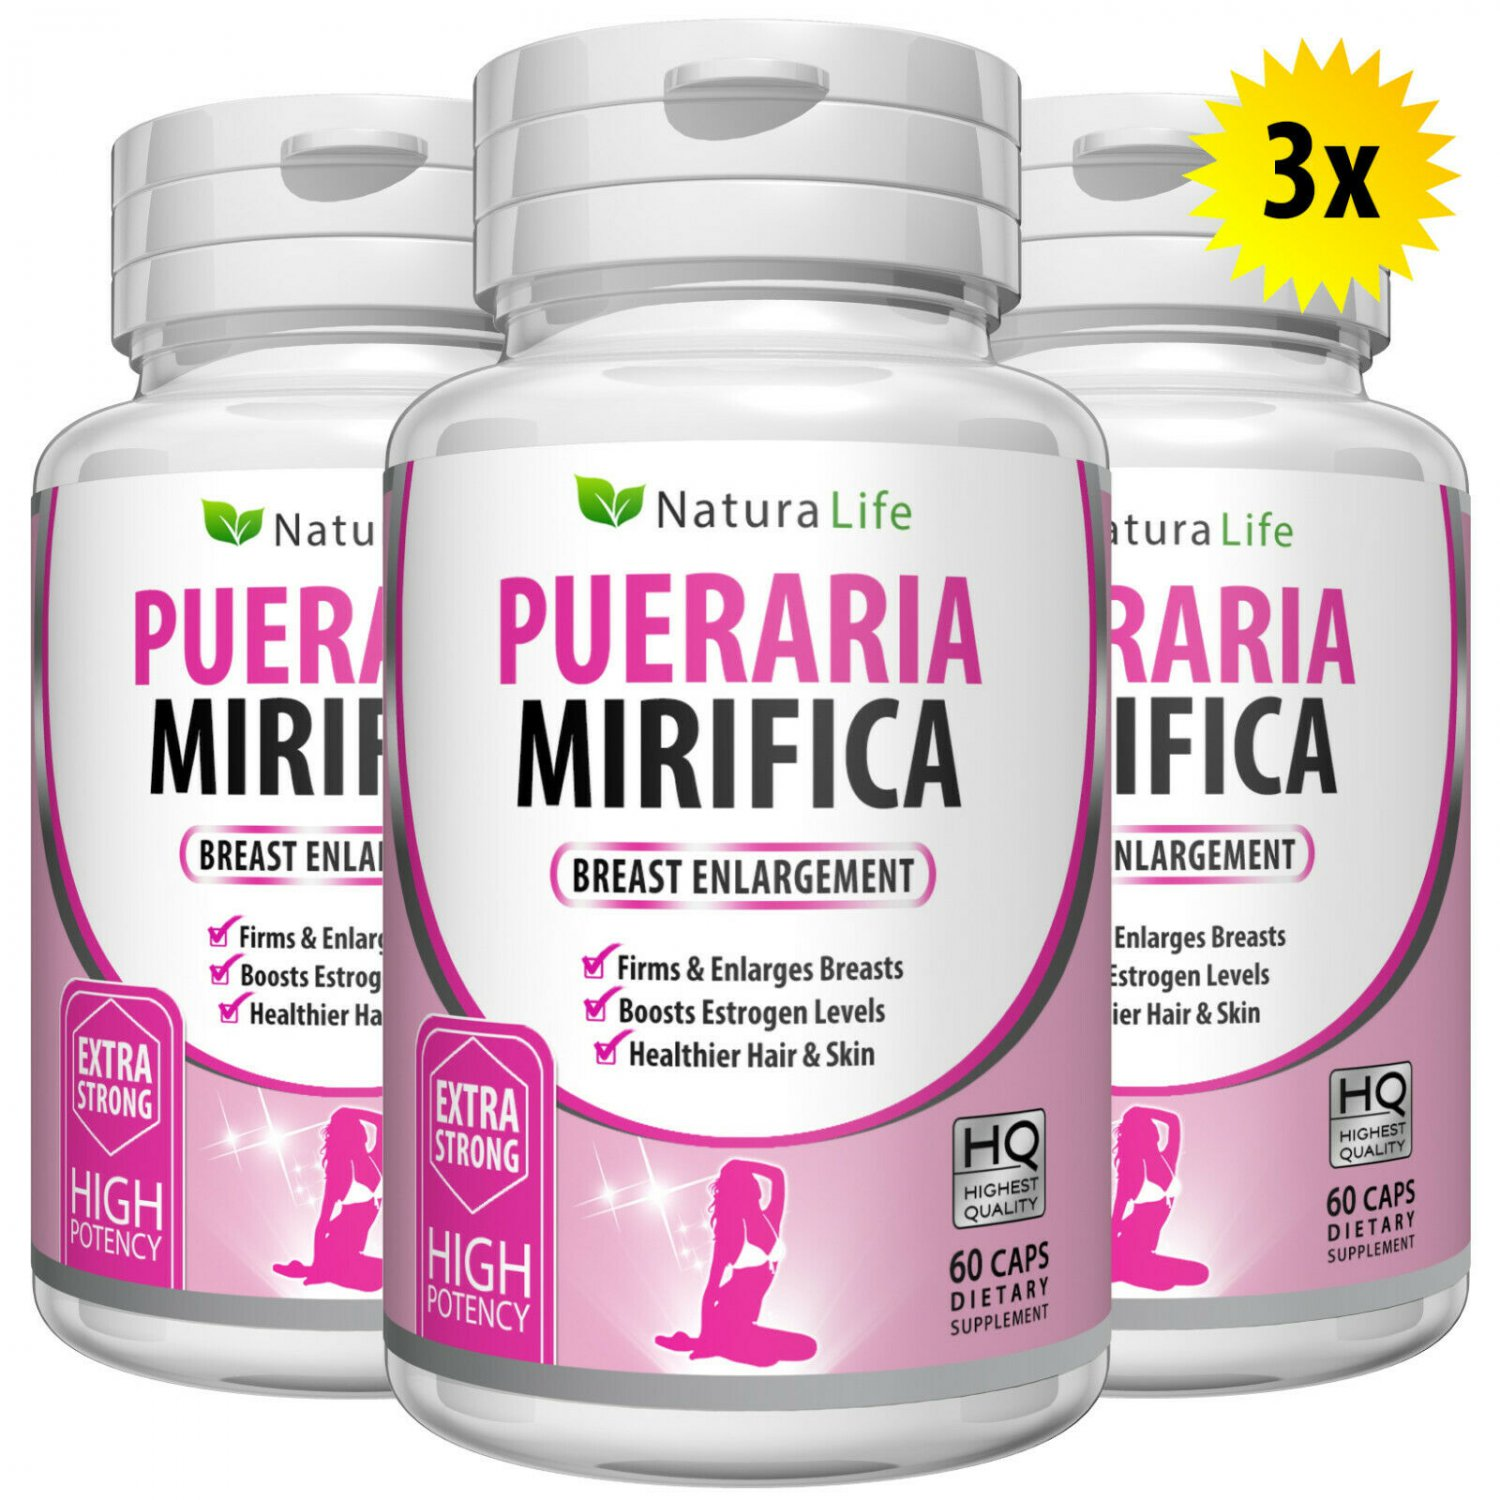 180 PURE PUERARIA MIRIFICA BREAST GROWTH CAPSULES BUST ENLARGEMENT PILLS 5000mg CTR